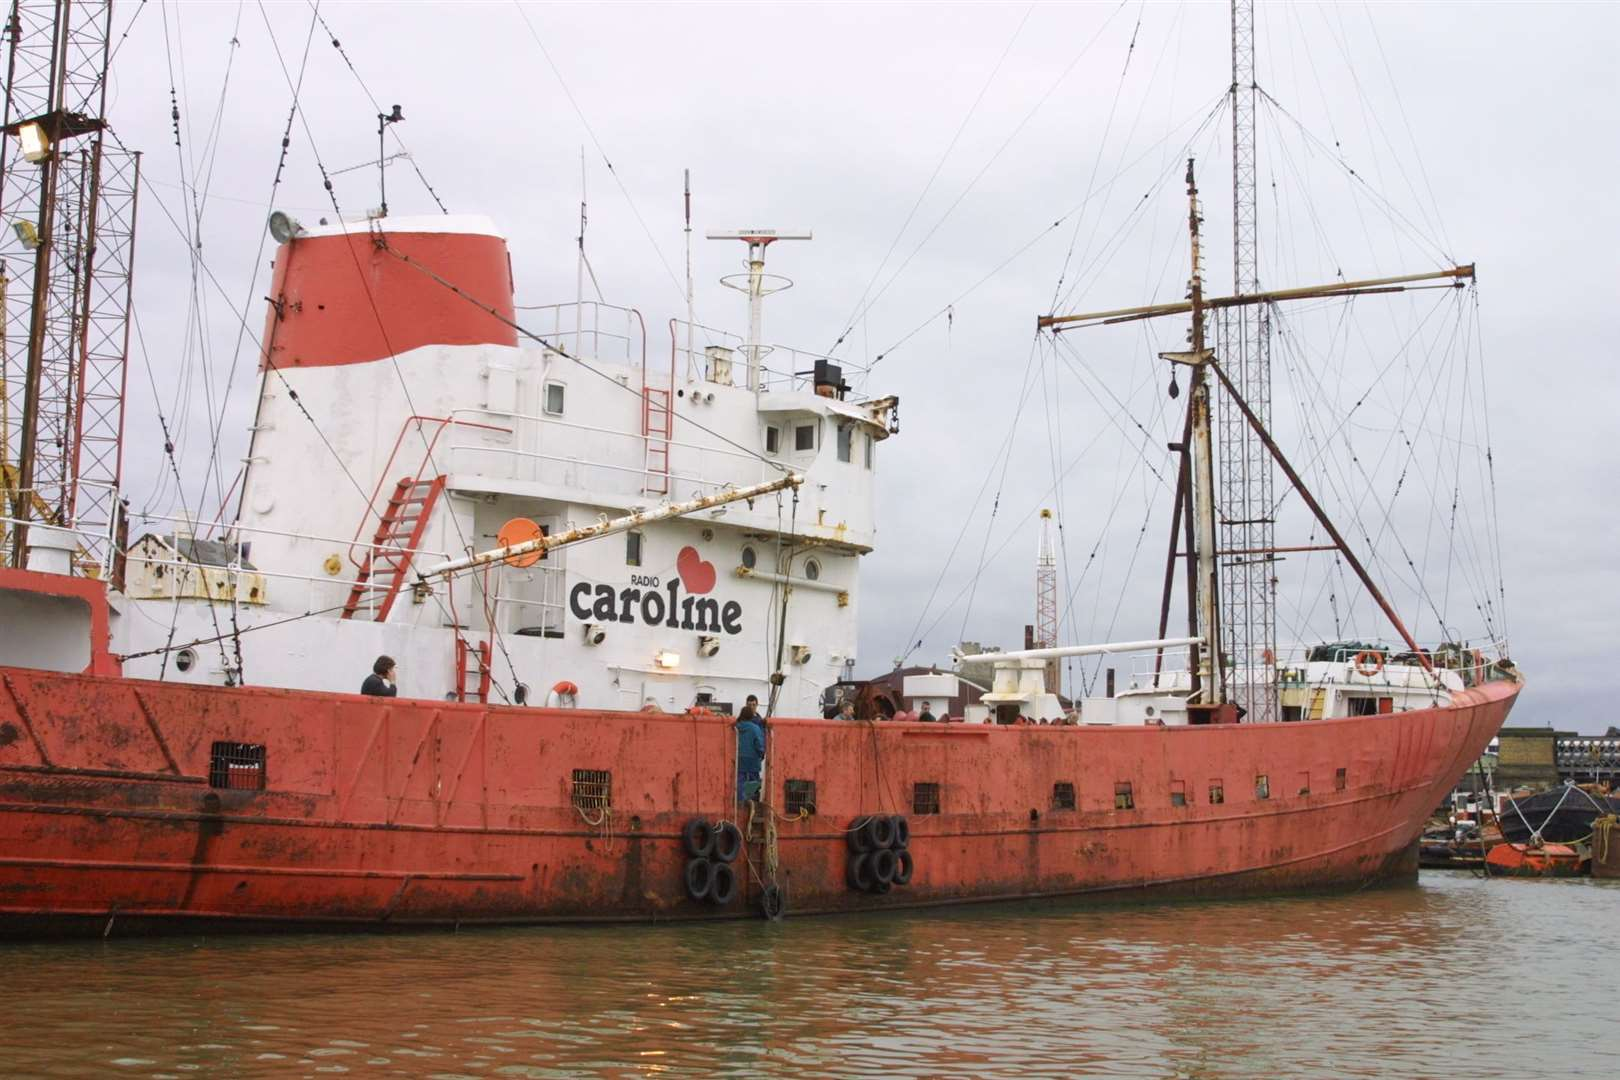 Radio Caroline's next ship the Ross Revenge - pictured at Chatham